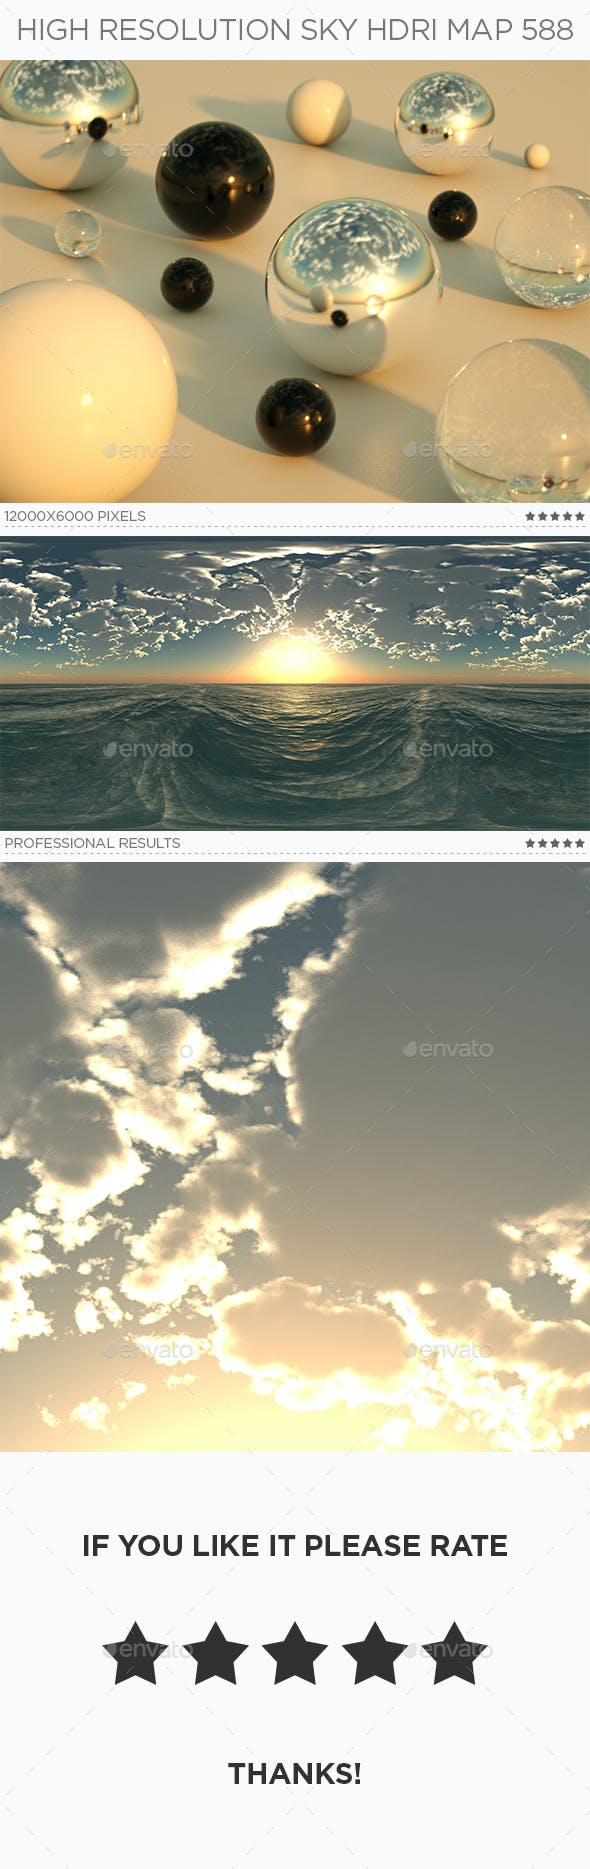 High Resolution Sky HDRi Map 588 - 3DOcean Item for Sale